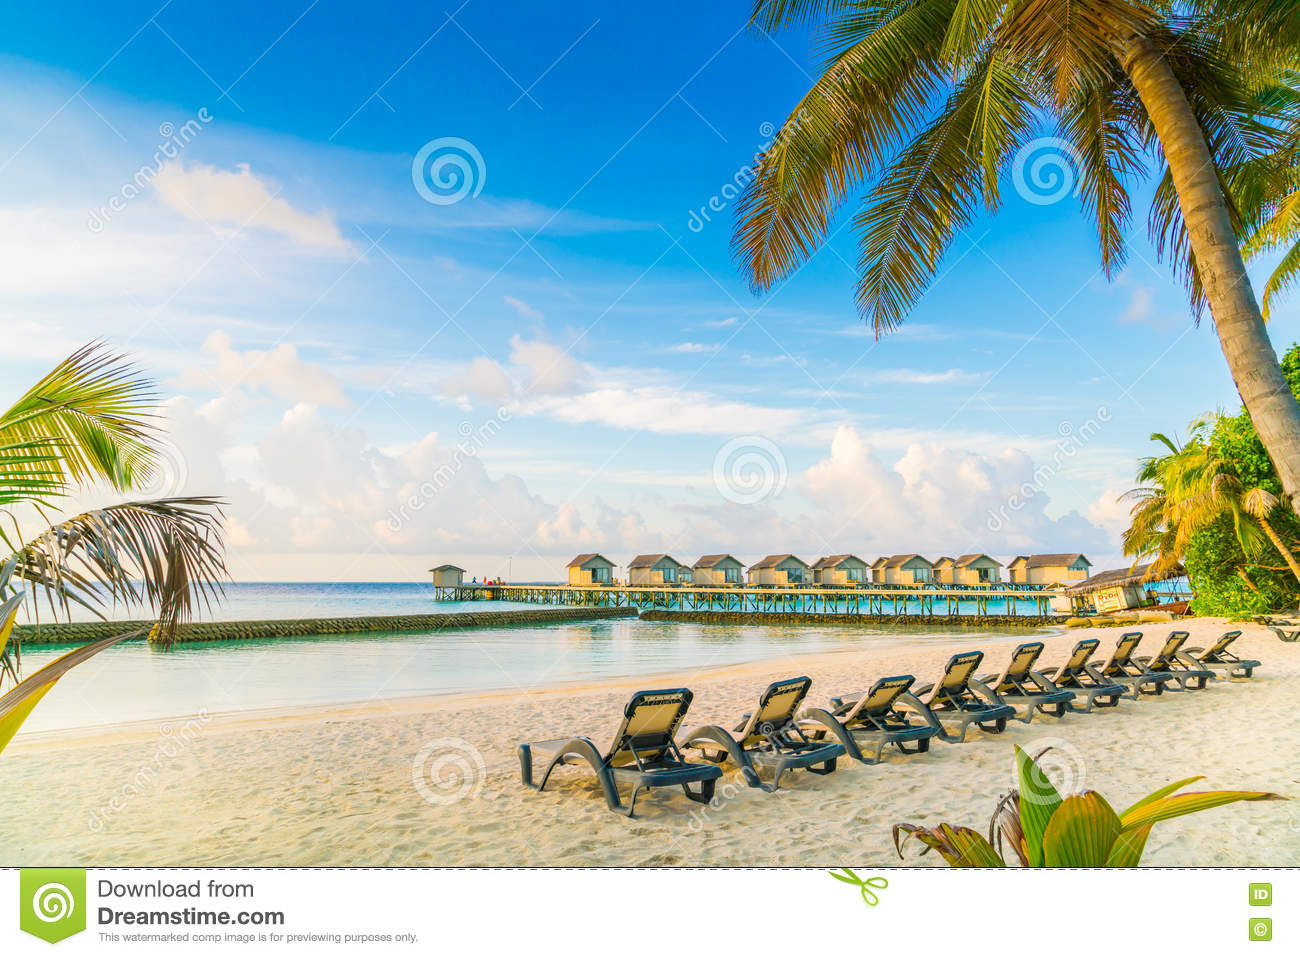 Beach chairs sunrise - Beach Chairs In Maldives Island With Water Villas At The Sunrise Stock Photo